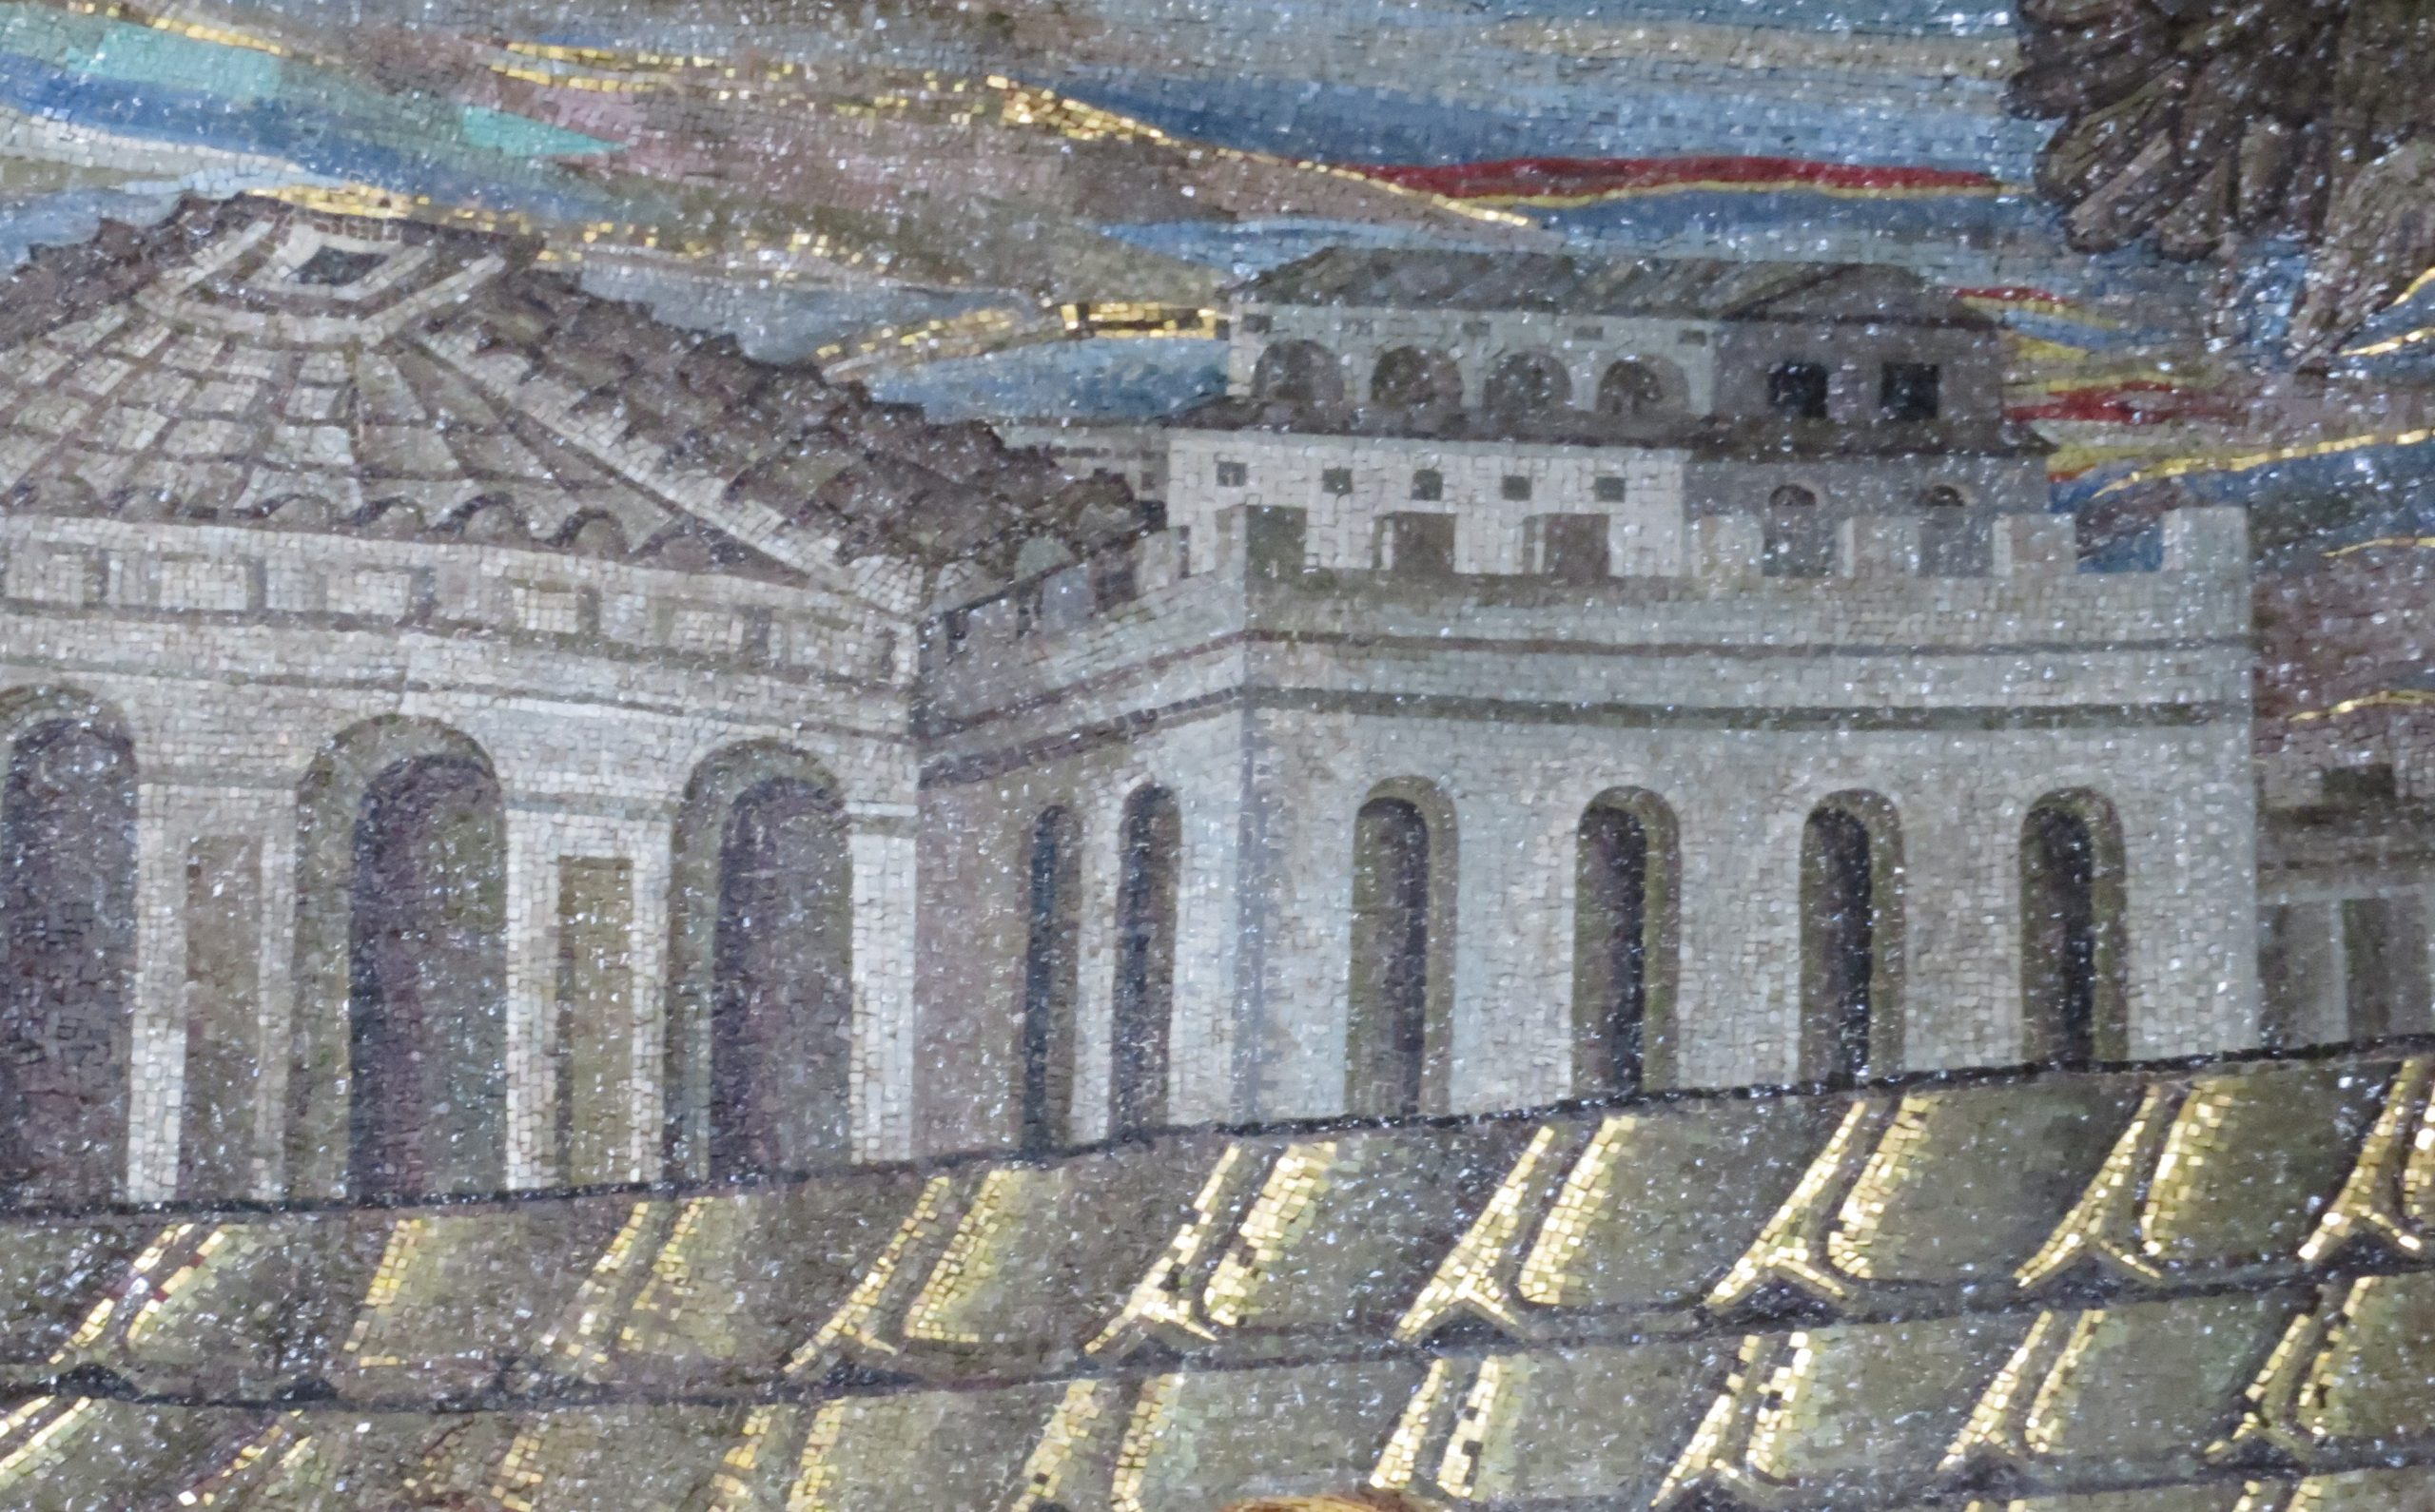 Early Christian Church Mosaic from the late 4th century A.D. in Rome shows ancient cityscape